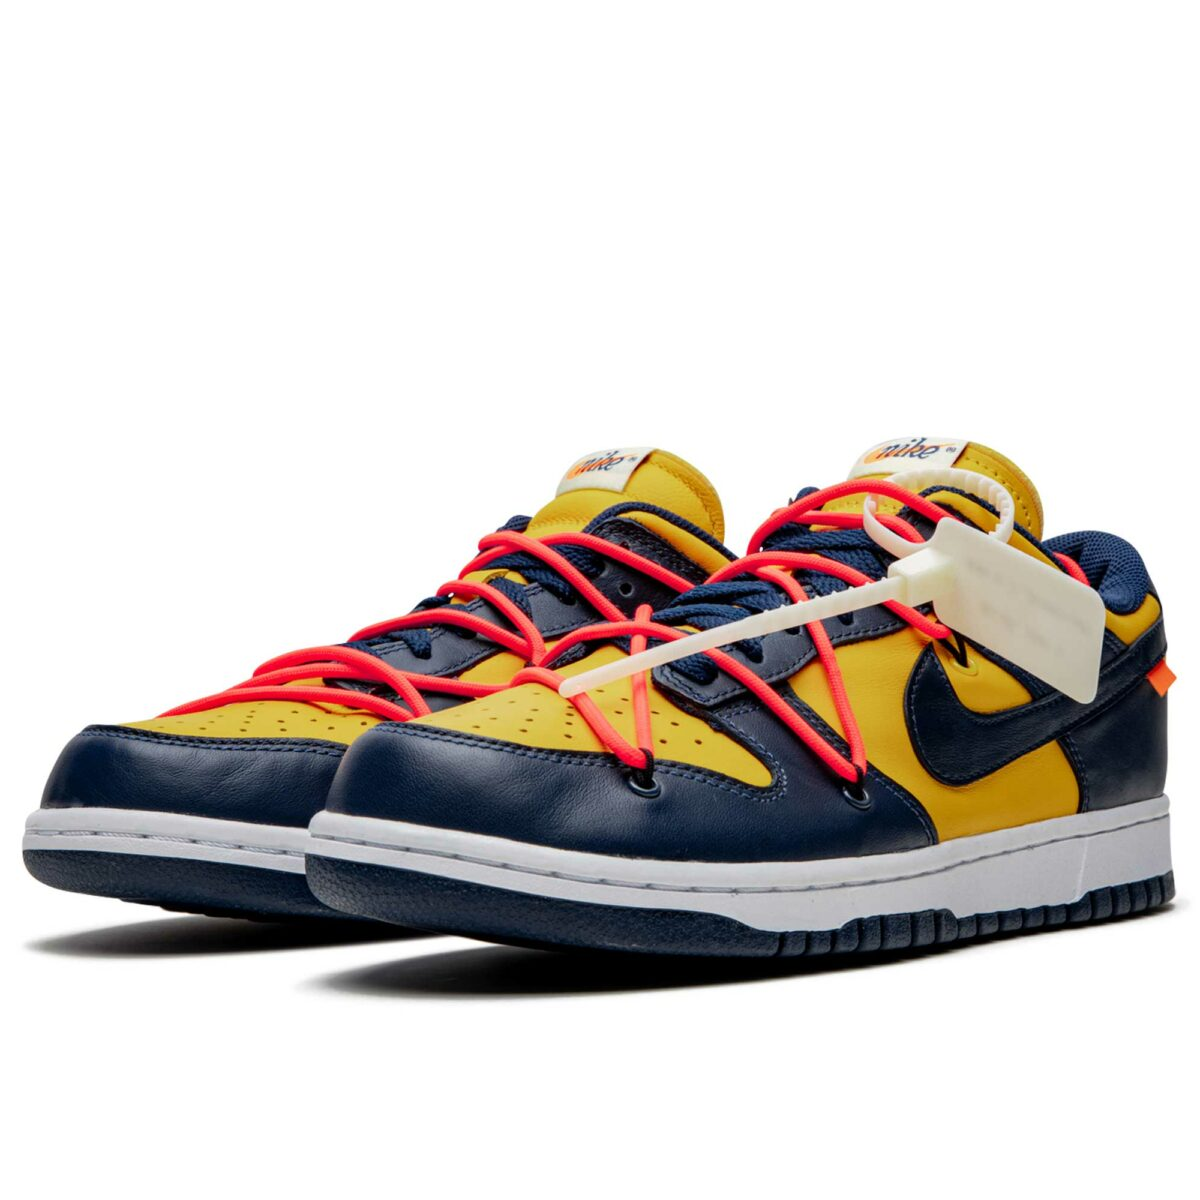 nike dunk low off-white - university gold CT0856_700 купить